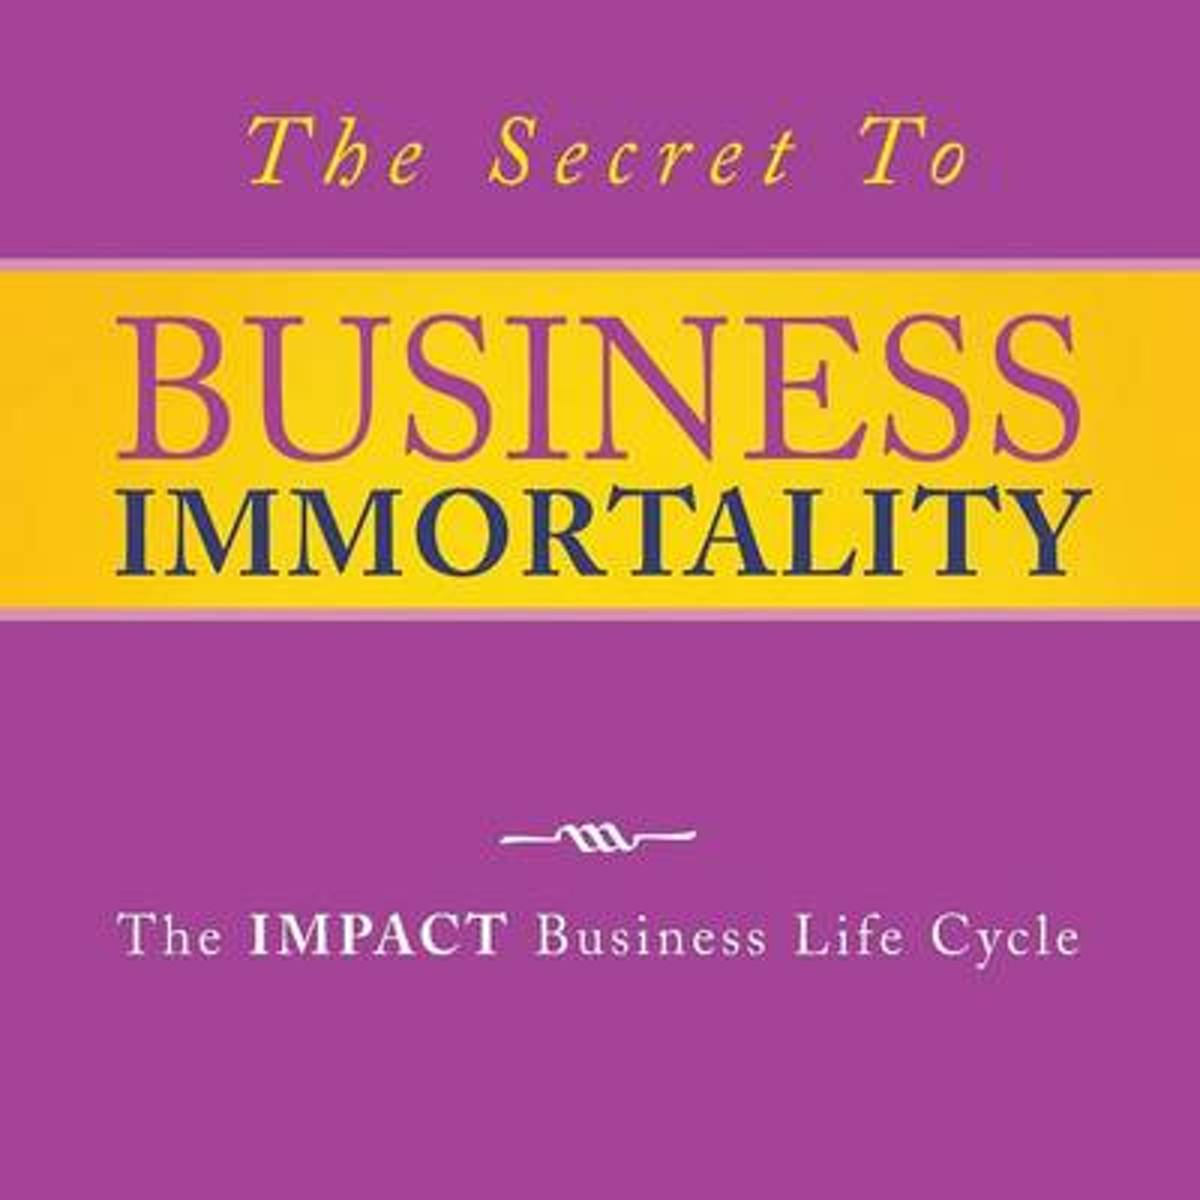 The Secret to Business Immortality